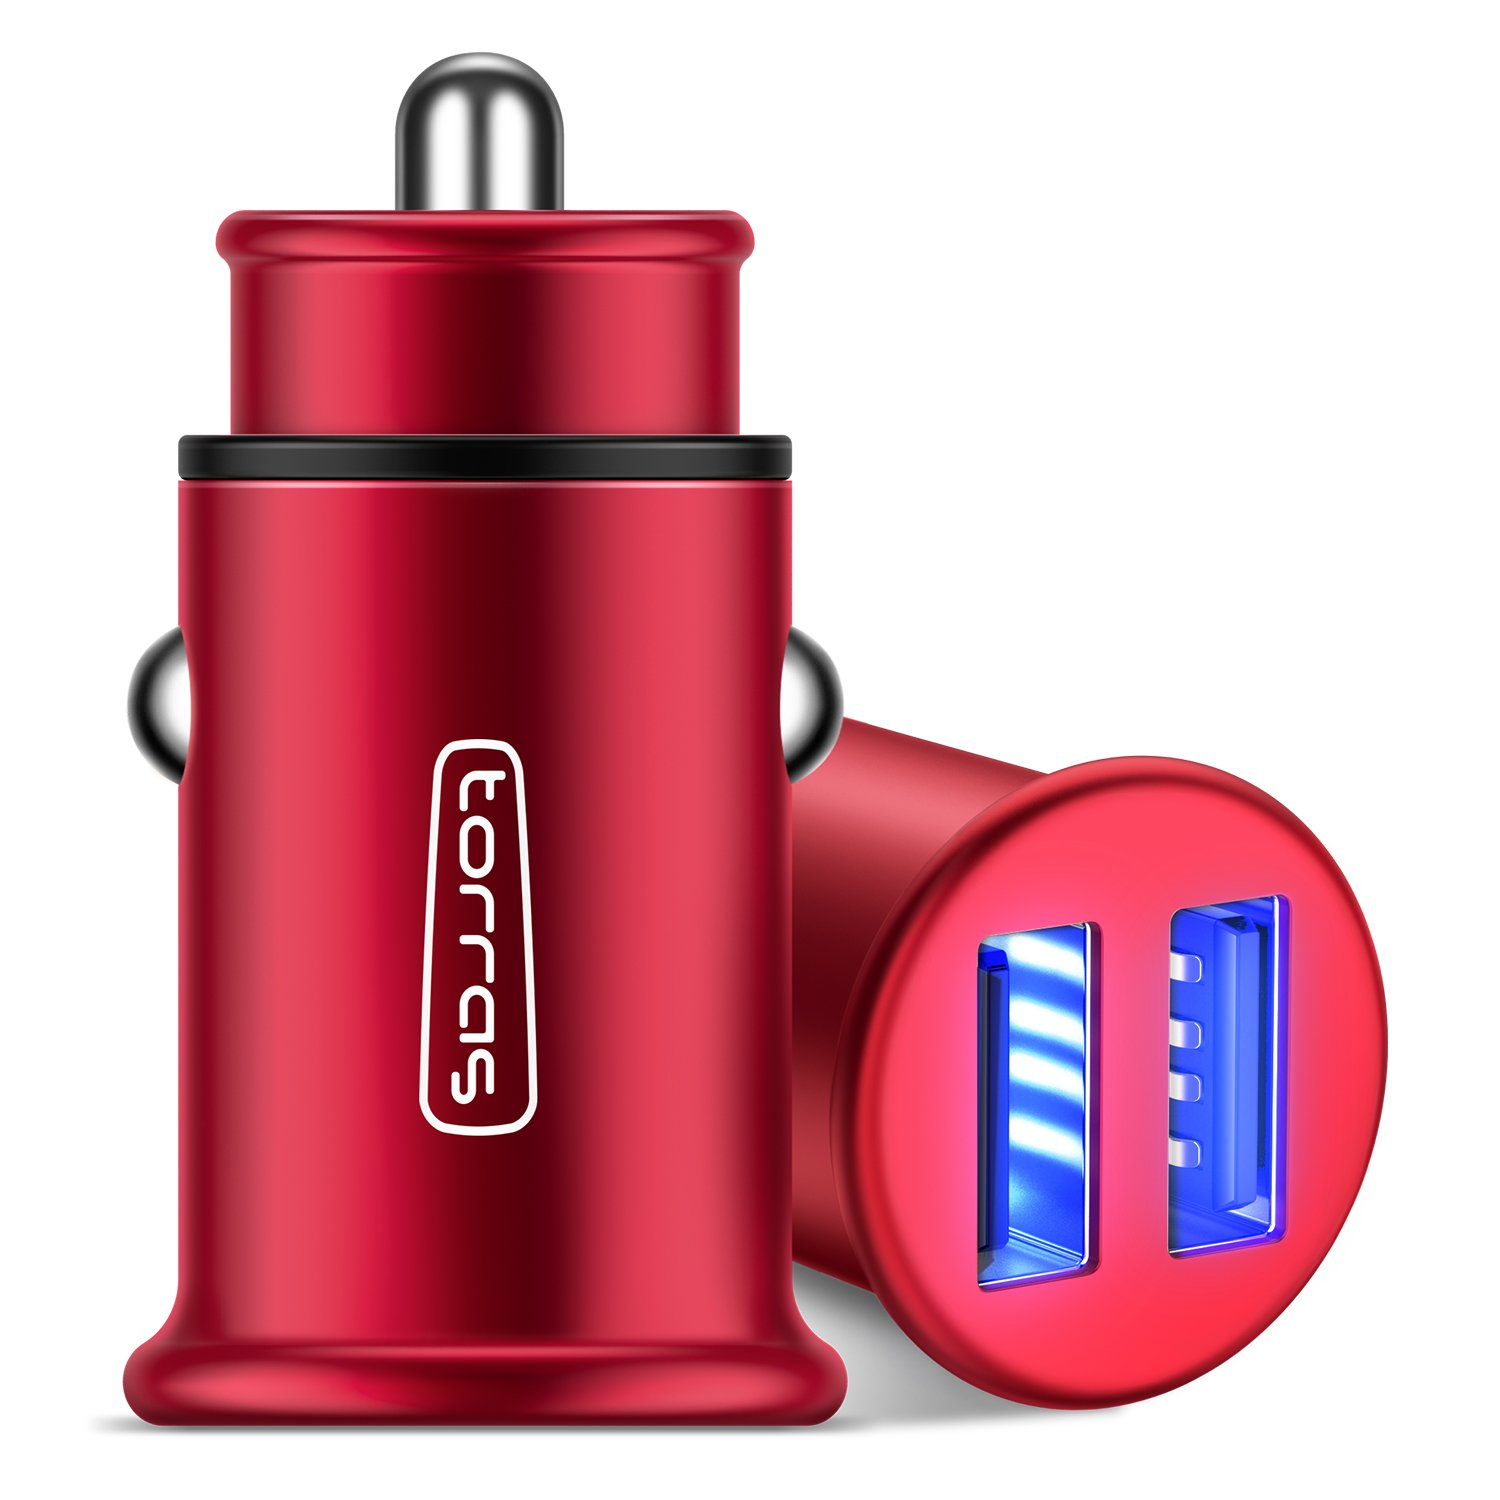 TORRAS Full Metal Car Charger, 4.8A 24W Flush Fit Dual USB Port Car Power Adapter for iPhone X/8/7/6/Plus, iPad Pro/Mini, Samsung Galaxy, LG and More (1-Pack) - Red